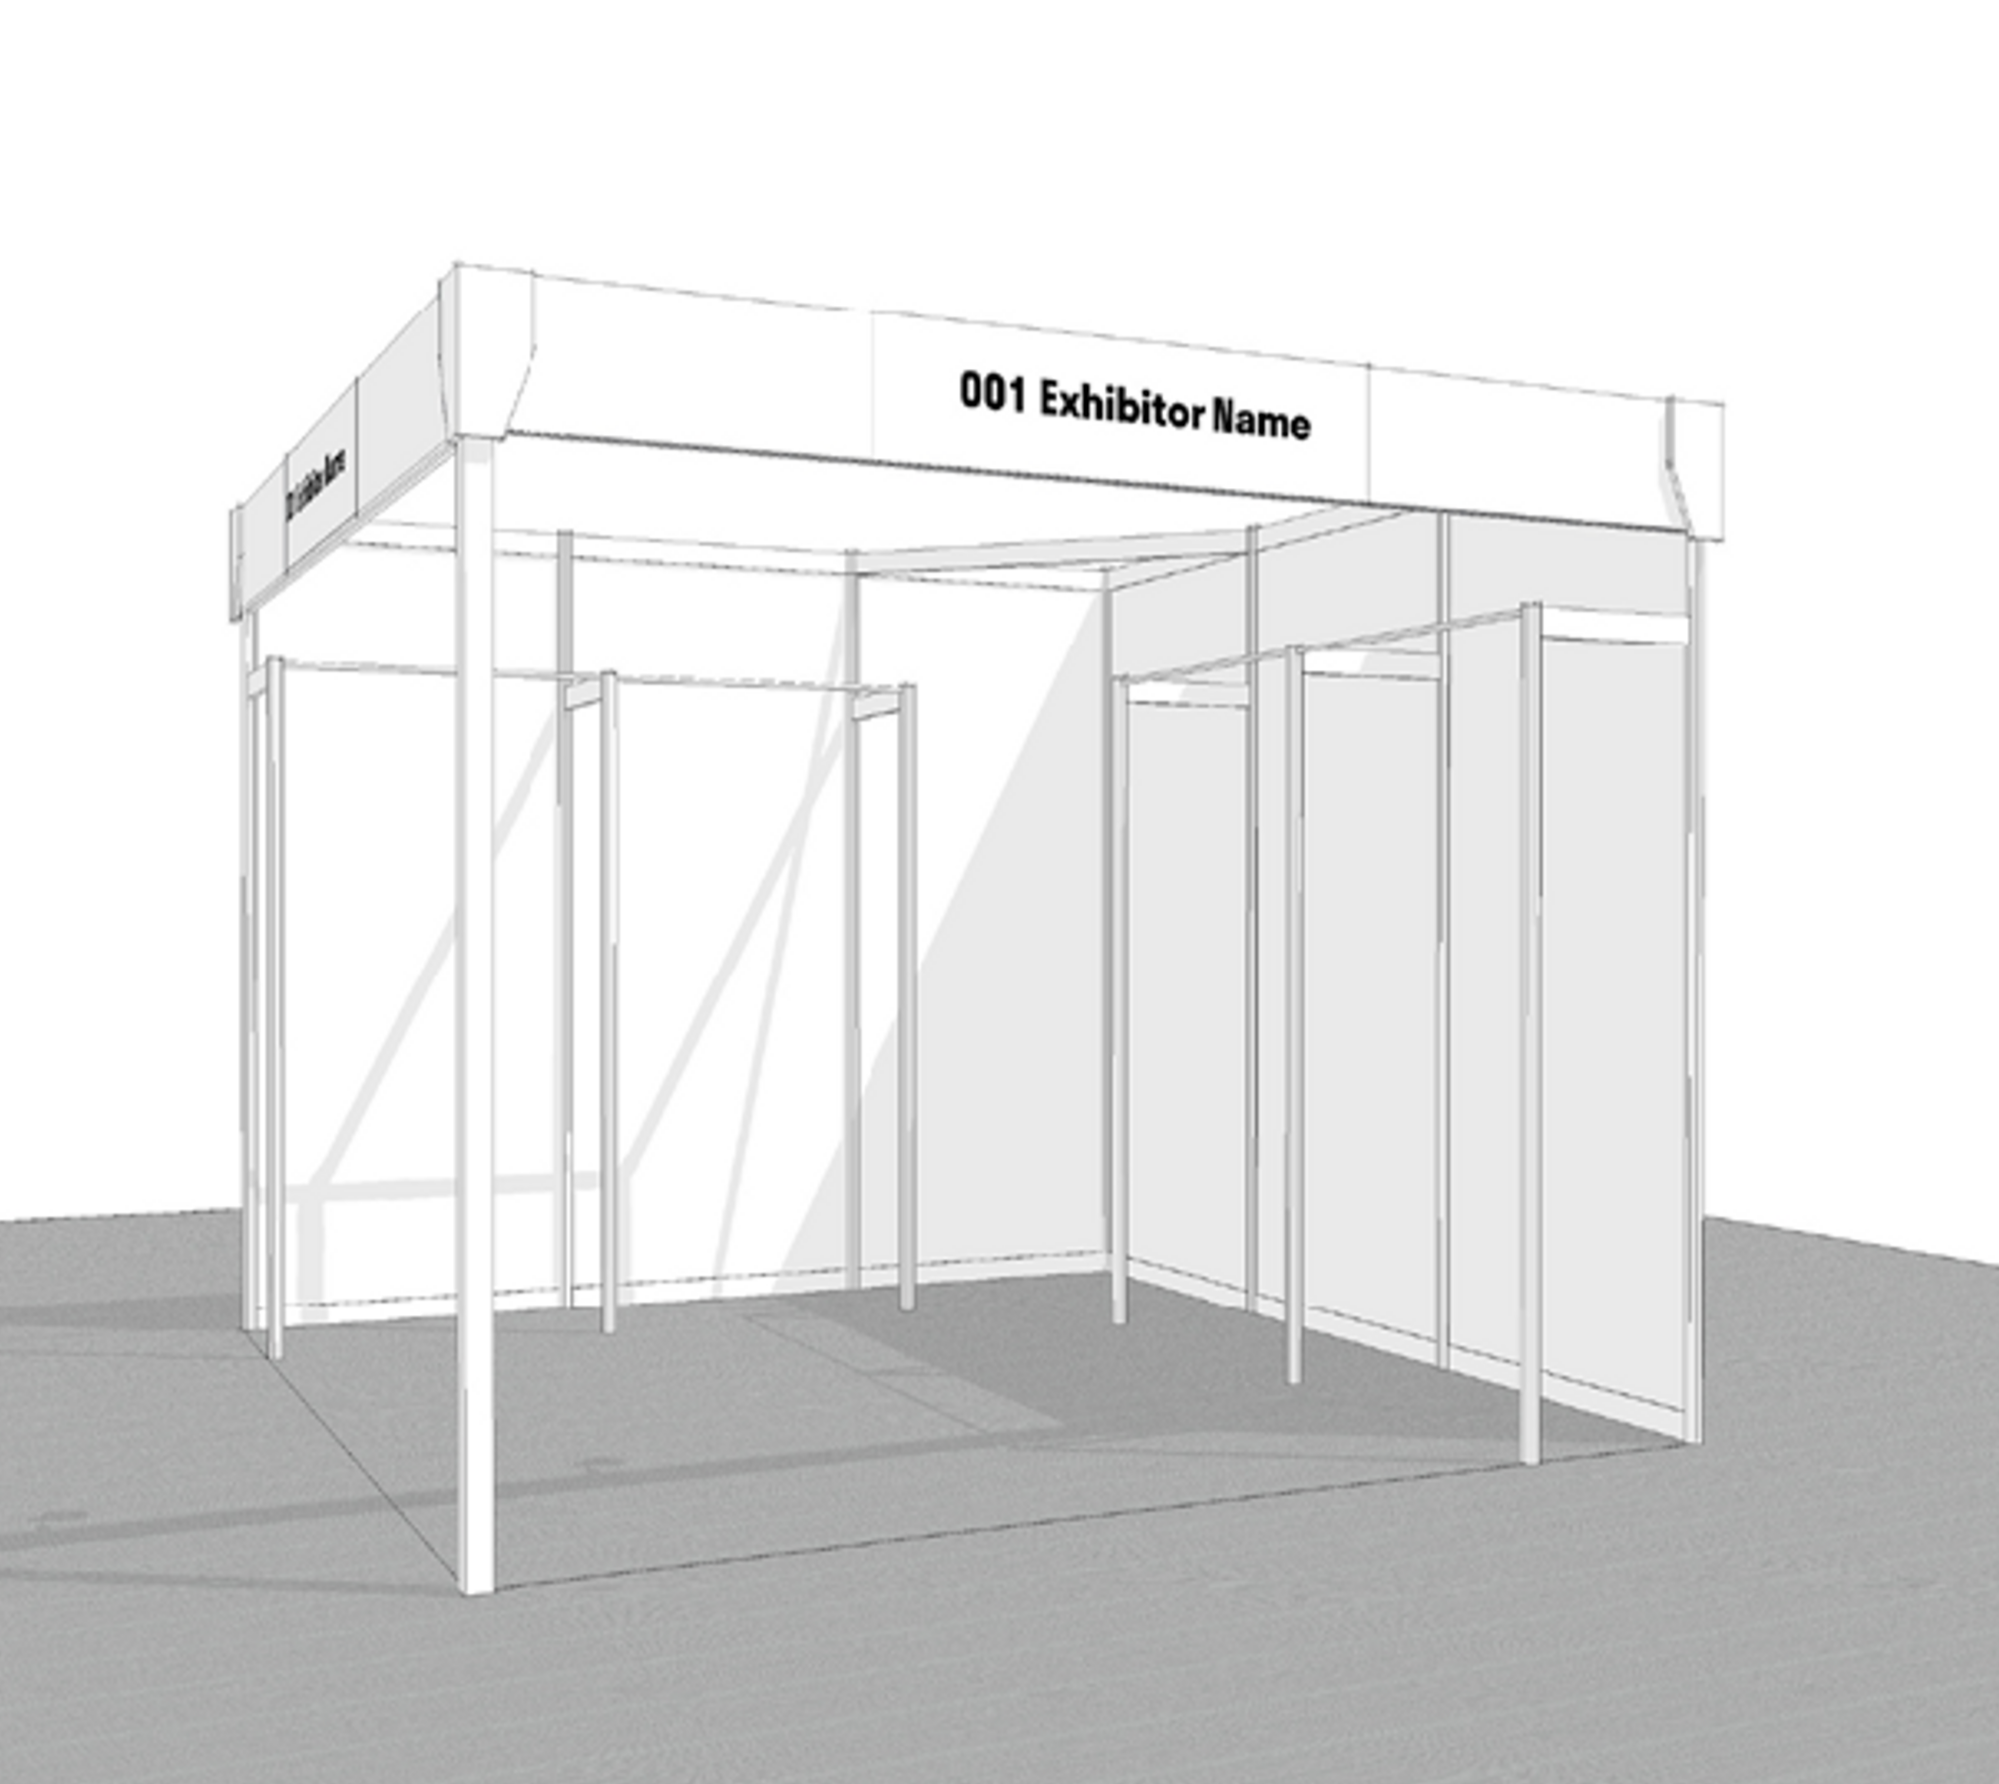 LBFW stand image